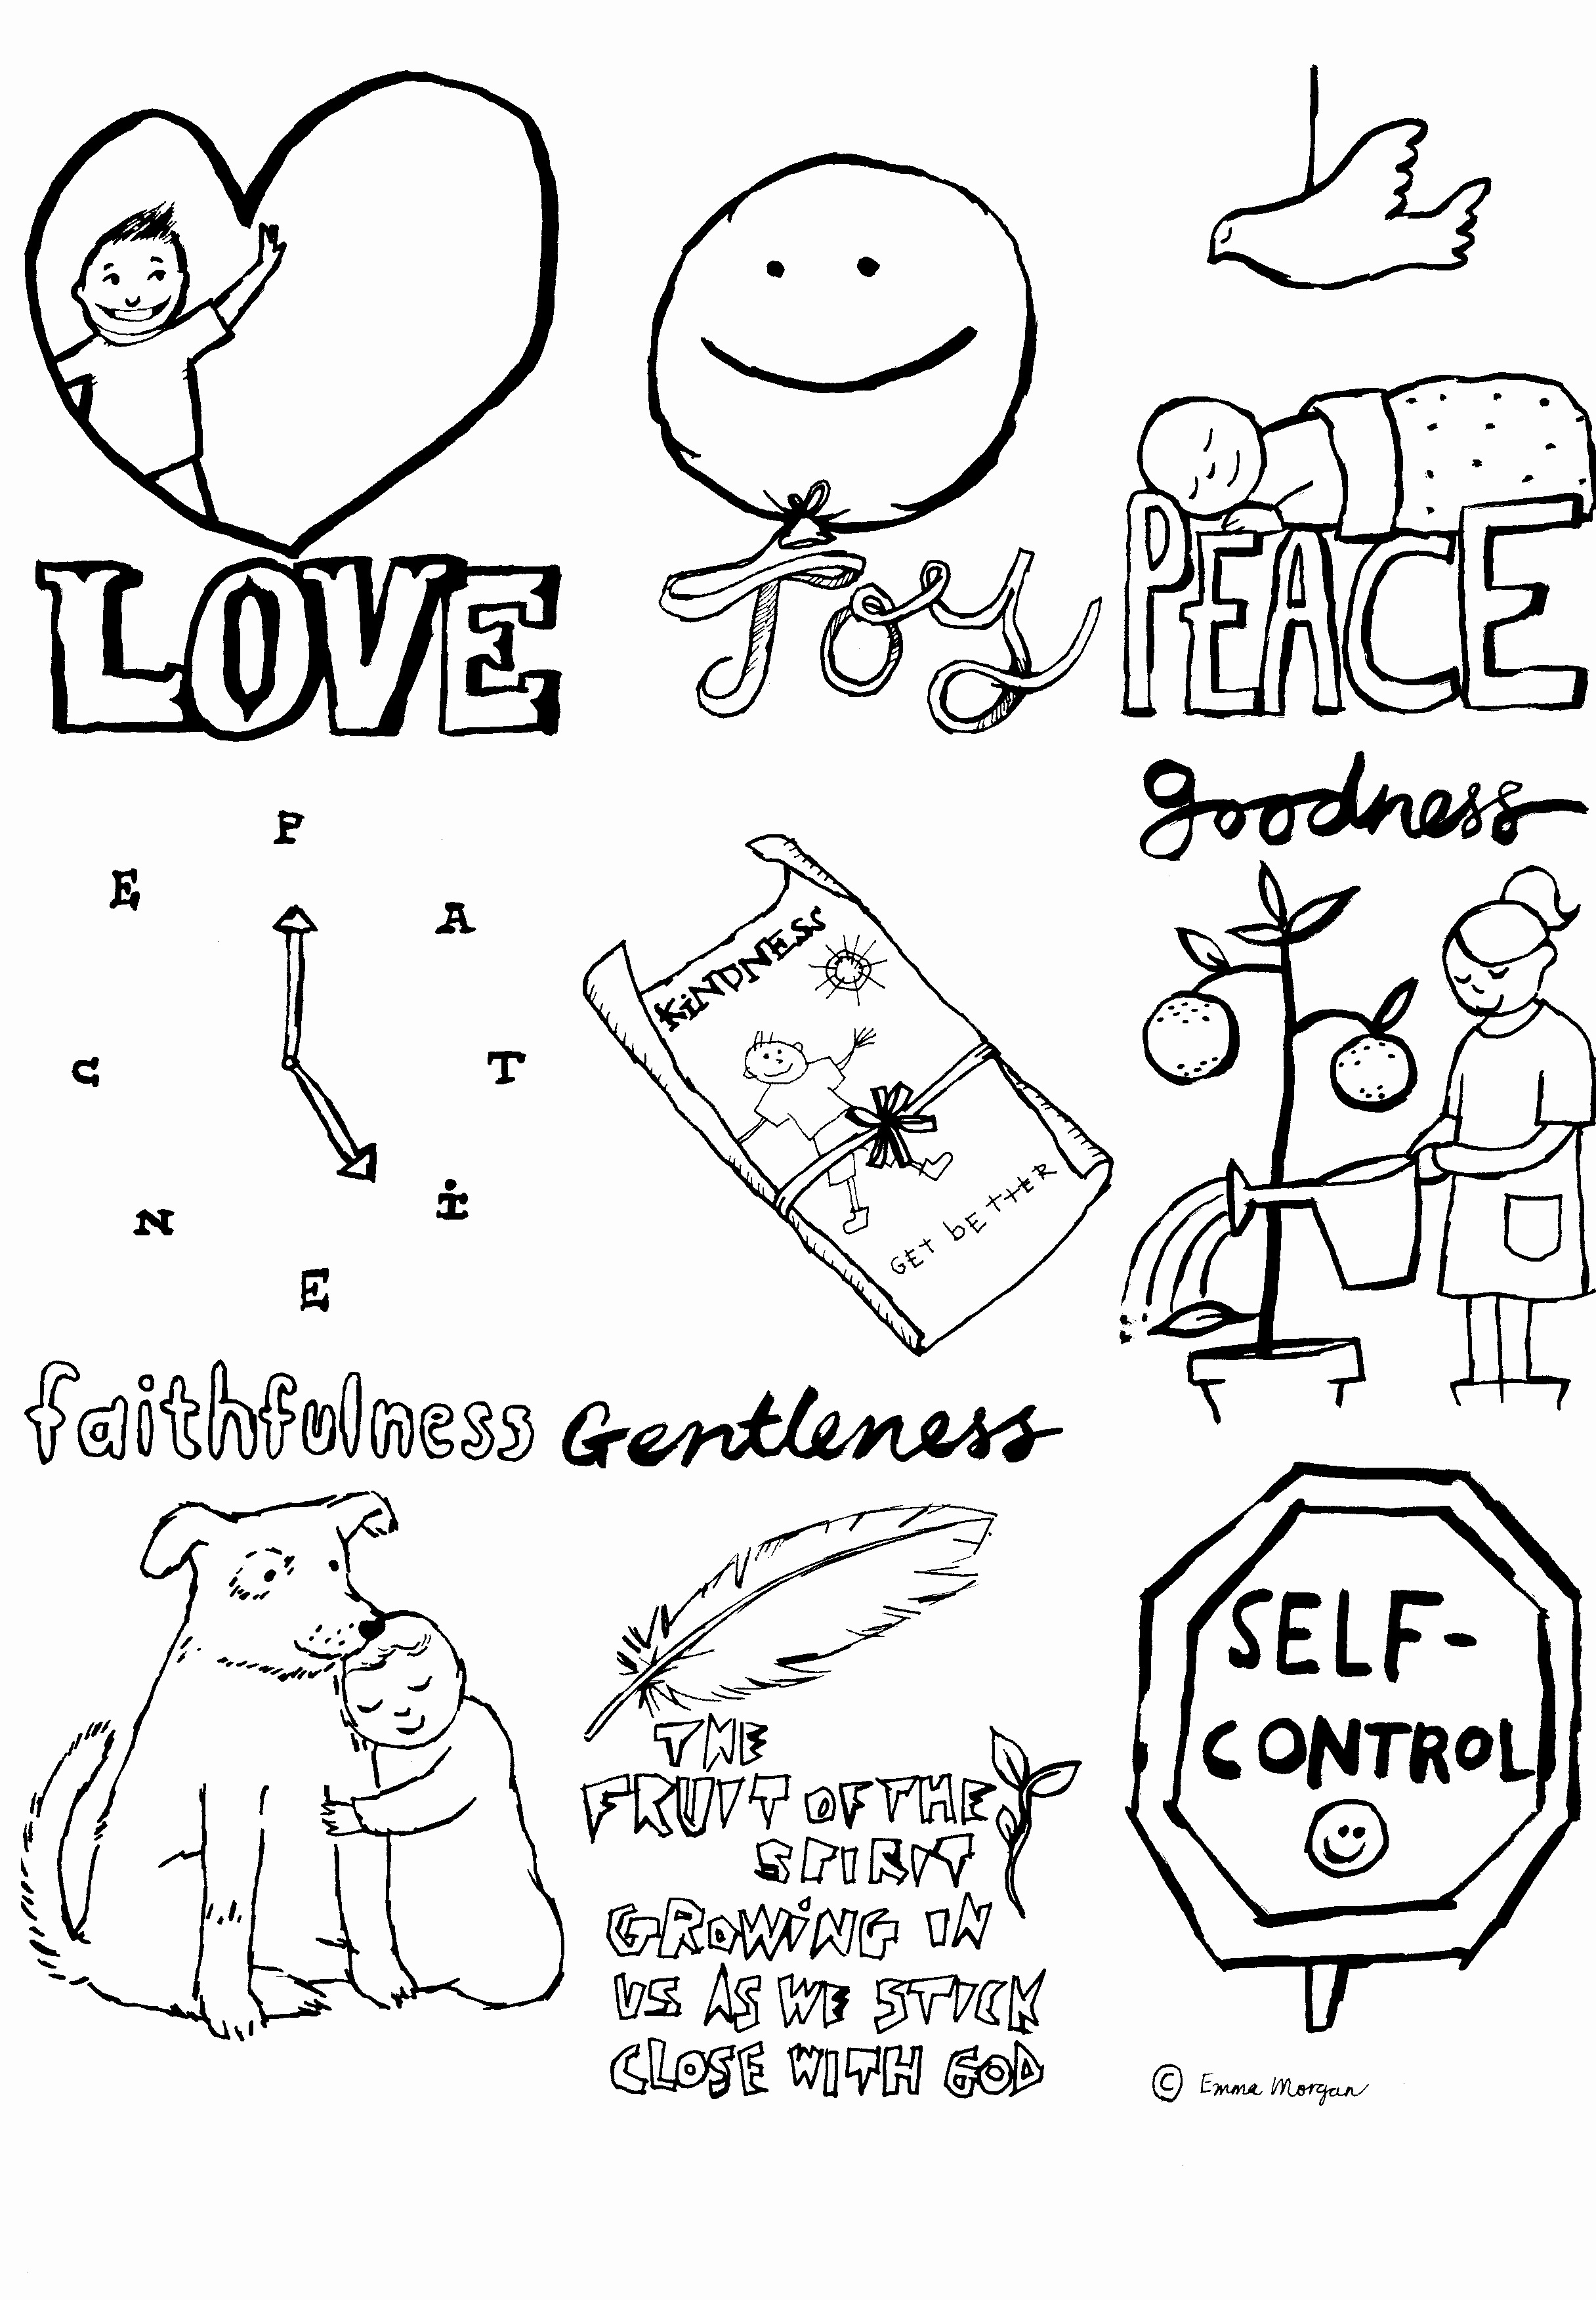 Self Control Coloring Pages  Printable 10t - To print for your project